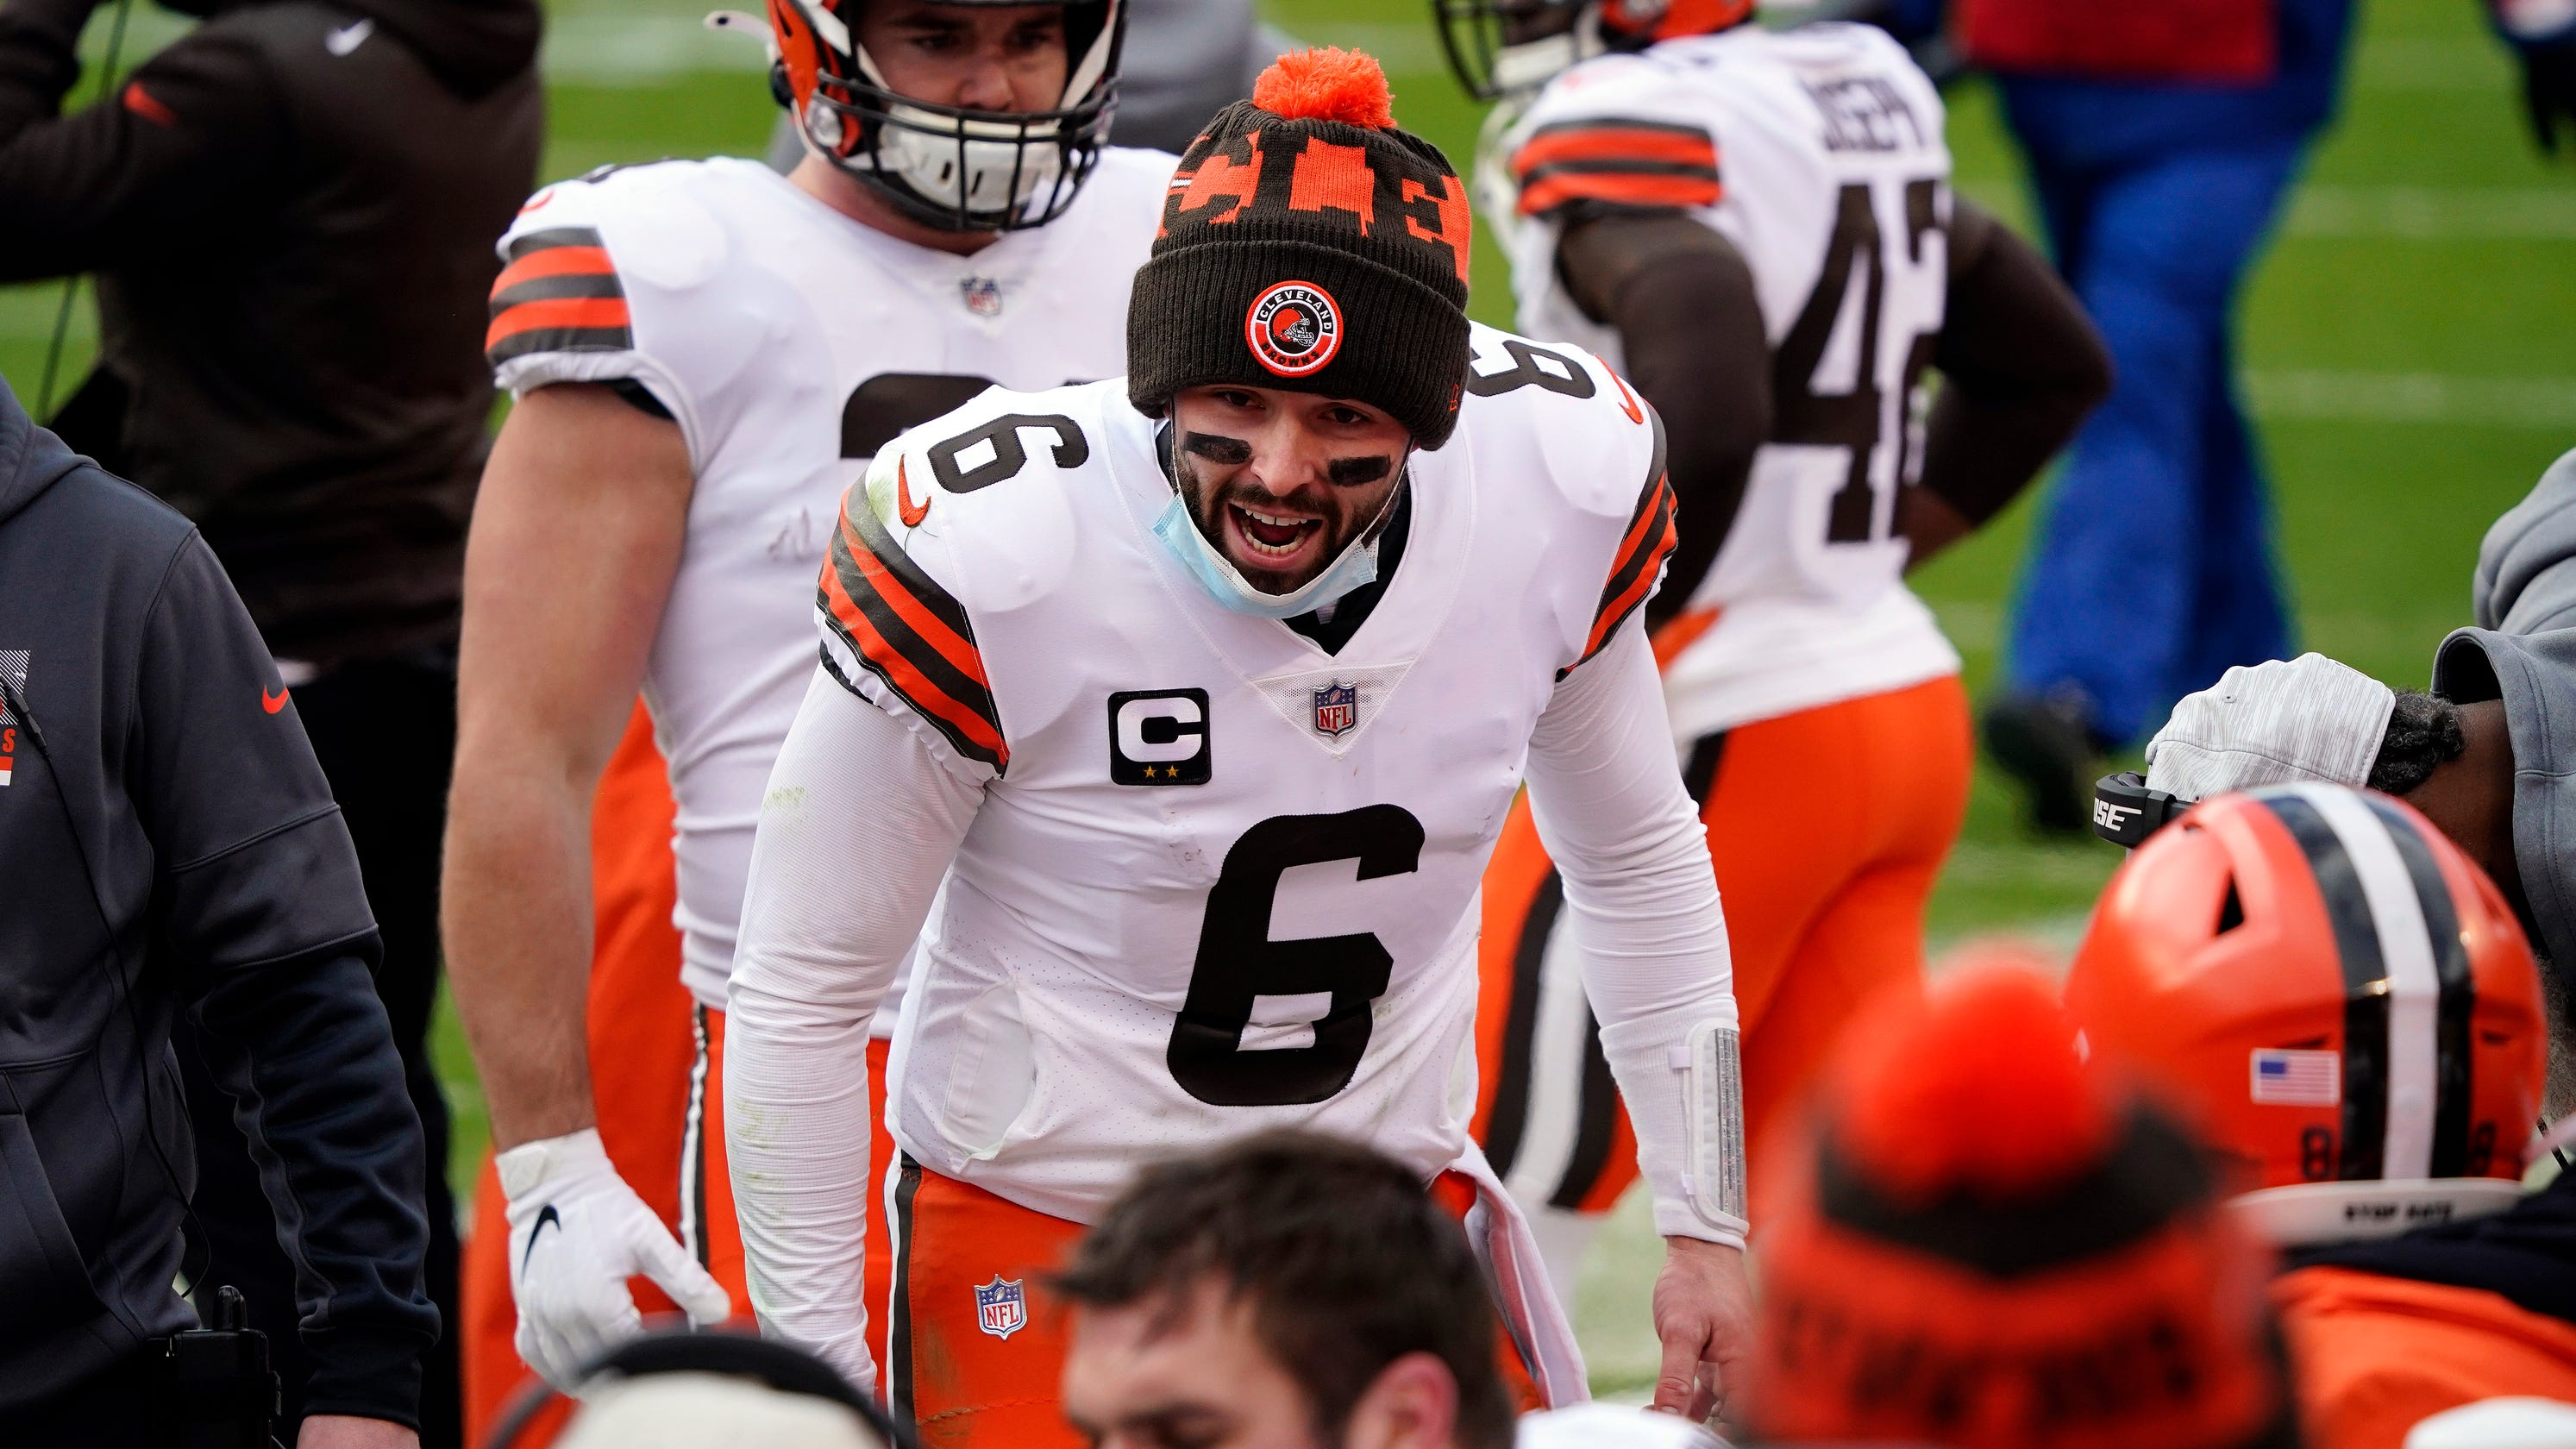 Browns QB Baker Mayfield not sweating contract extension: 'I want to go out and win games'